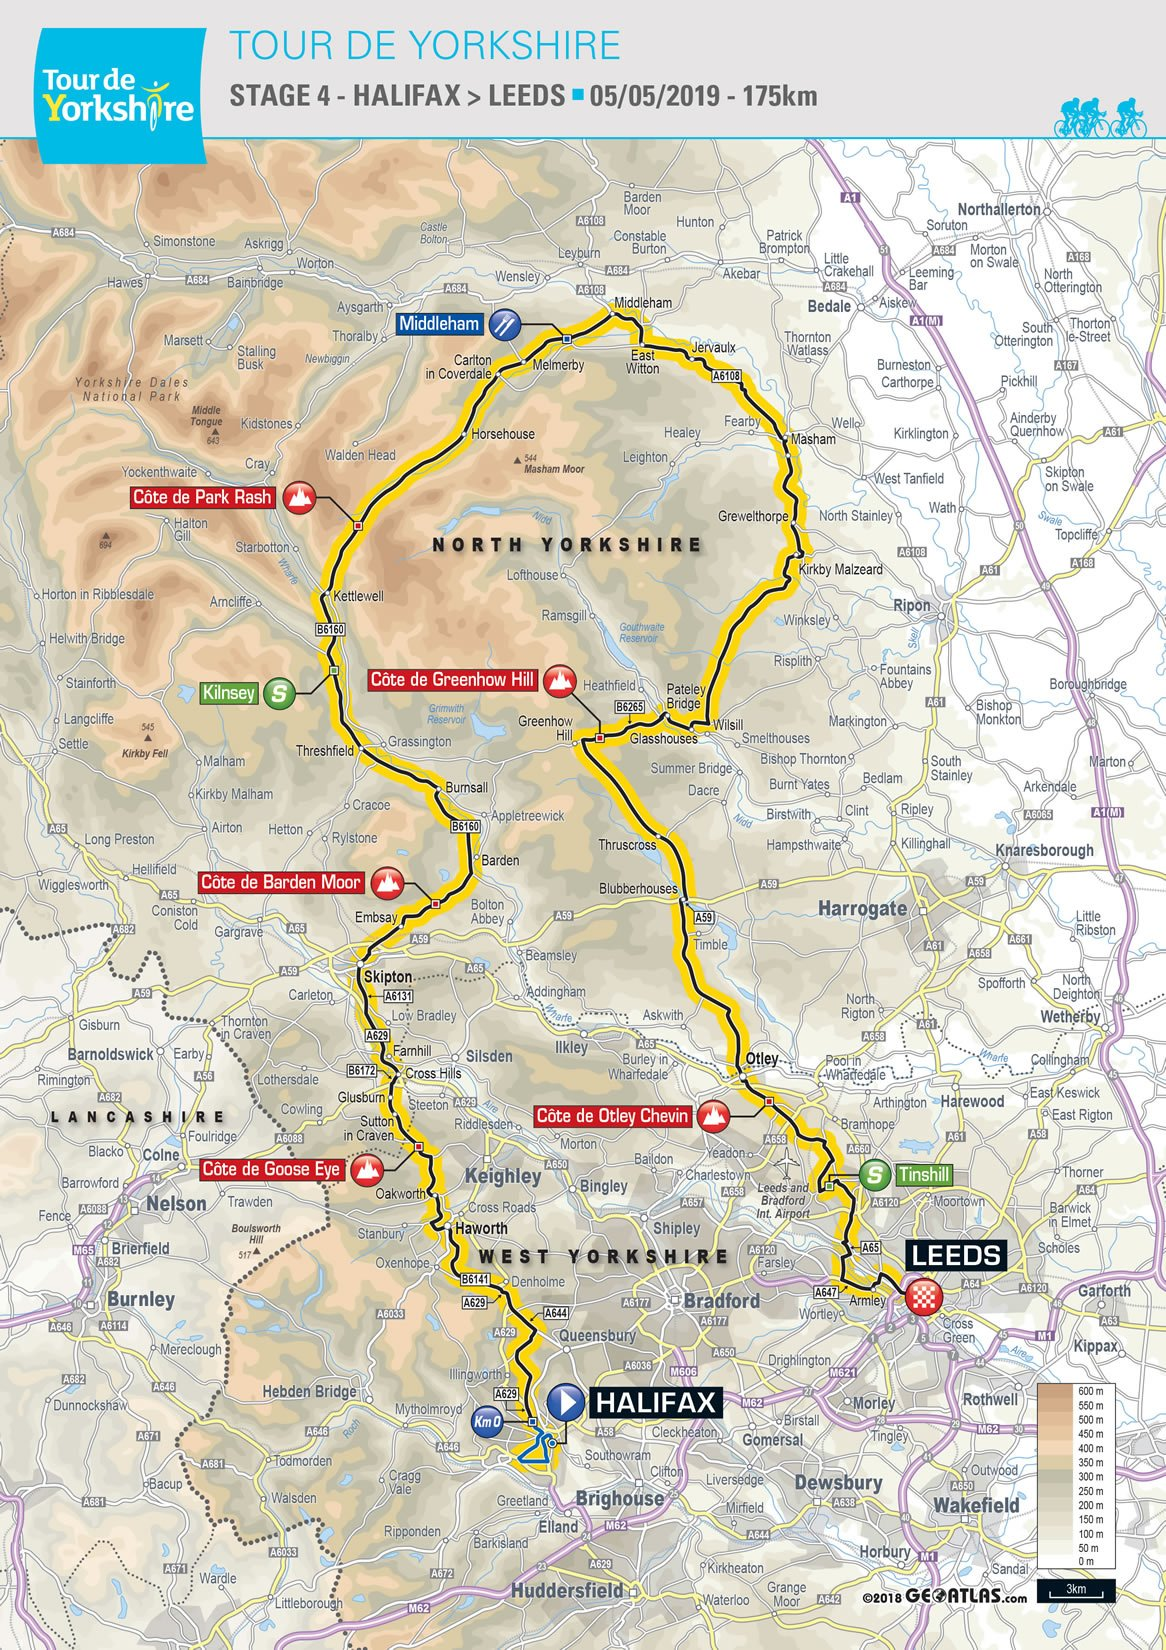 Tour de Yorkshire 2019 routes announced in Leeds | Tour de